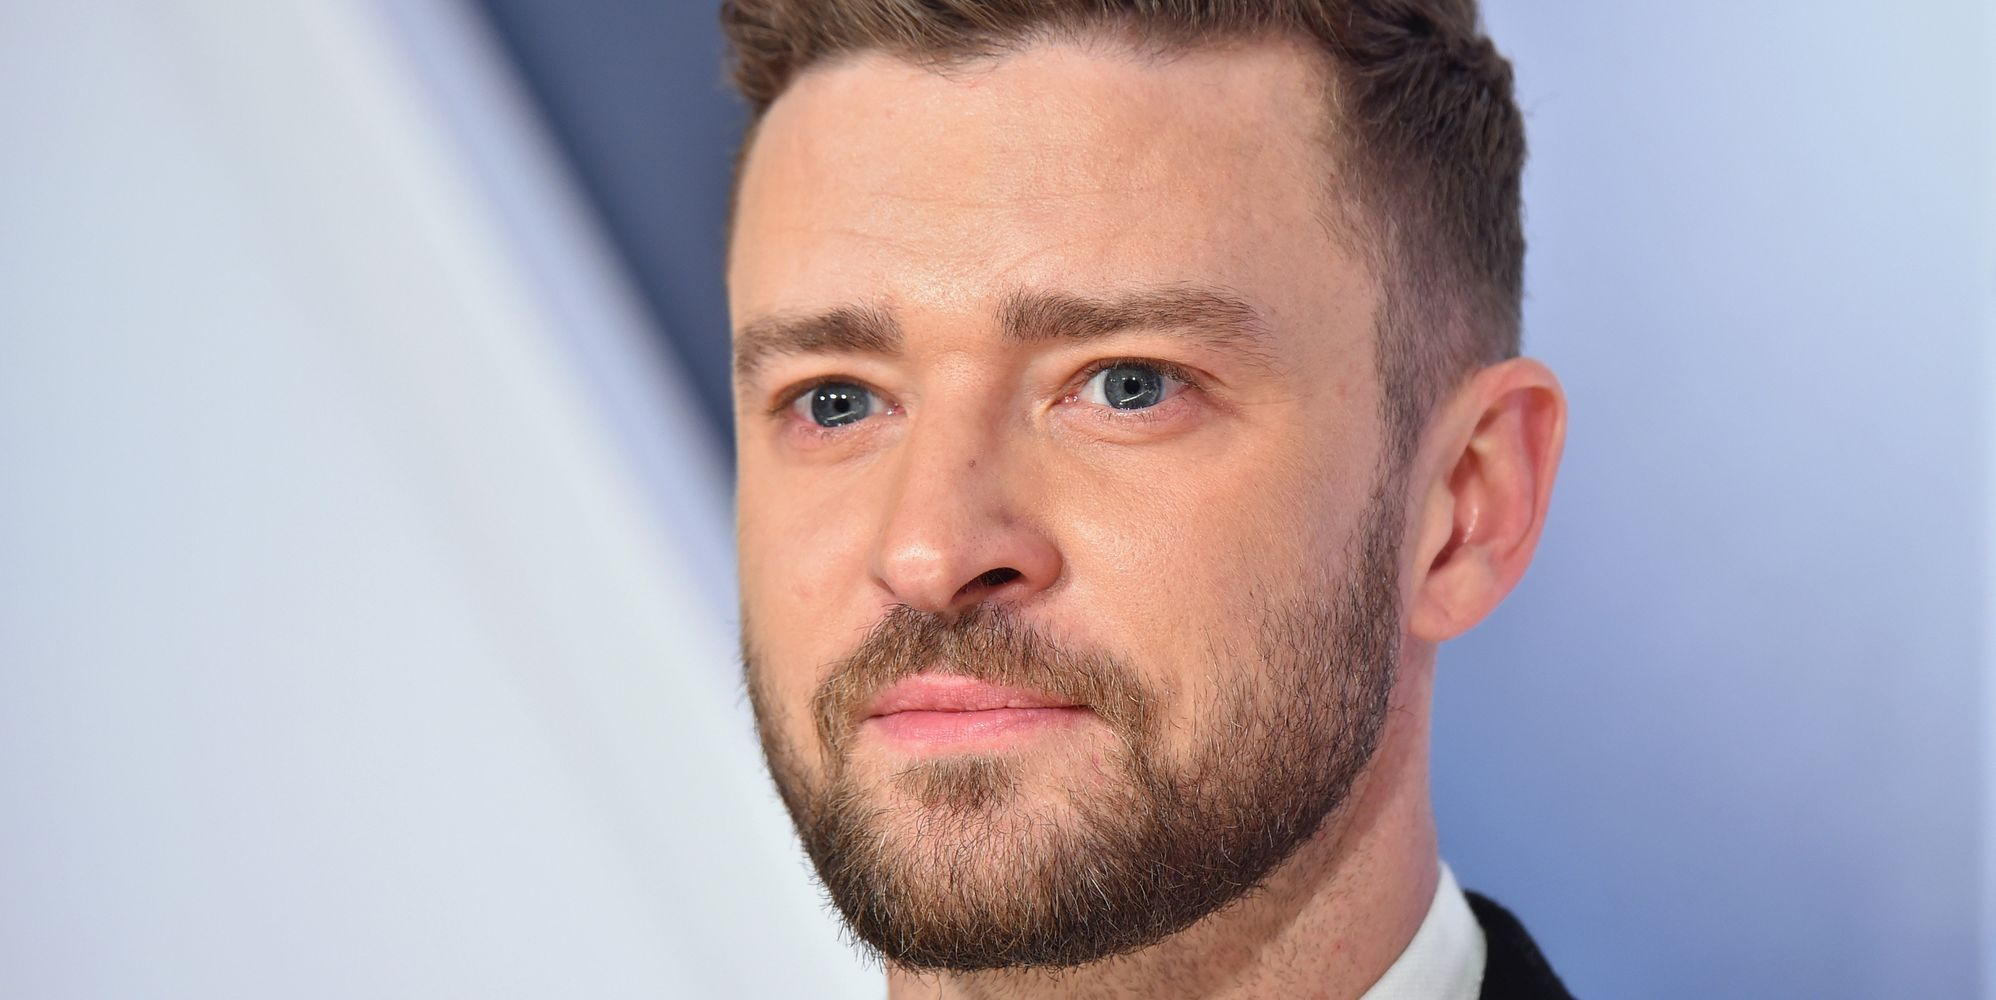 Justin timberlake sings 39 tennessee whiskey 39 and 39 drink you for Tennessee whiskey justin timberlake